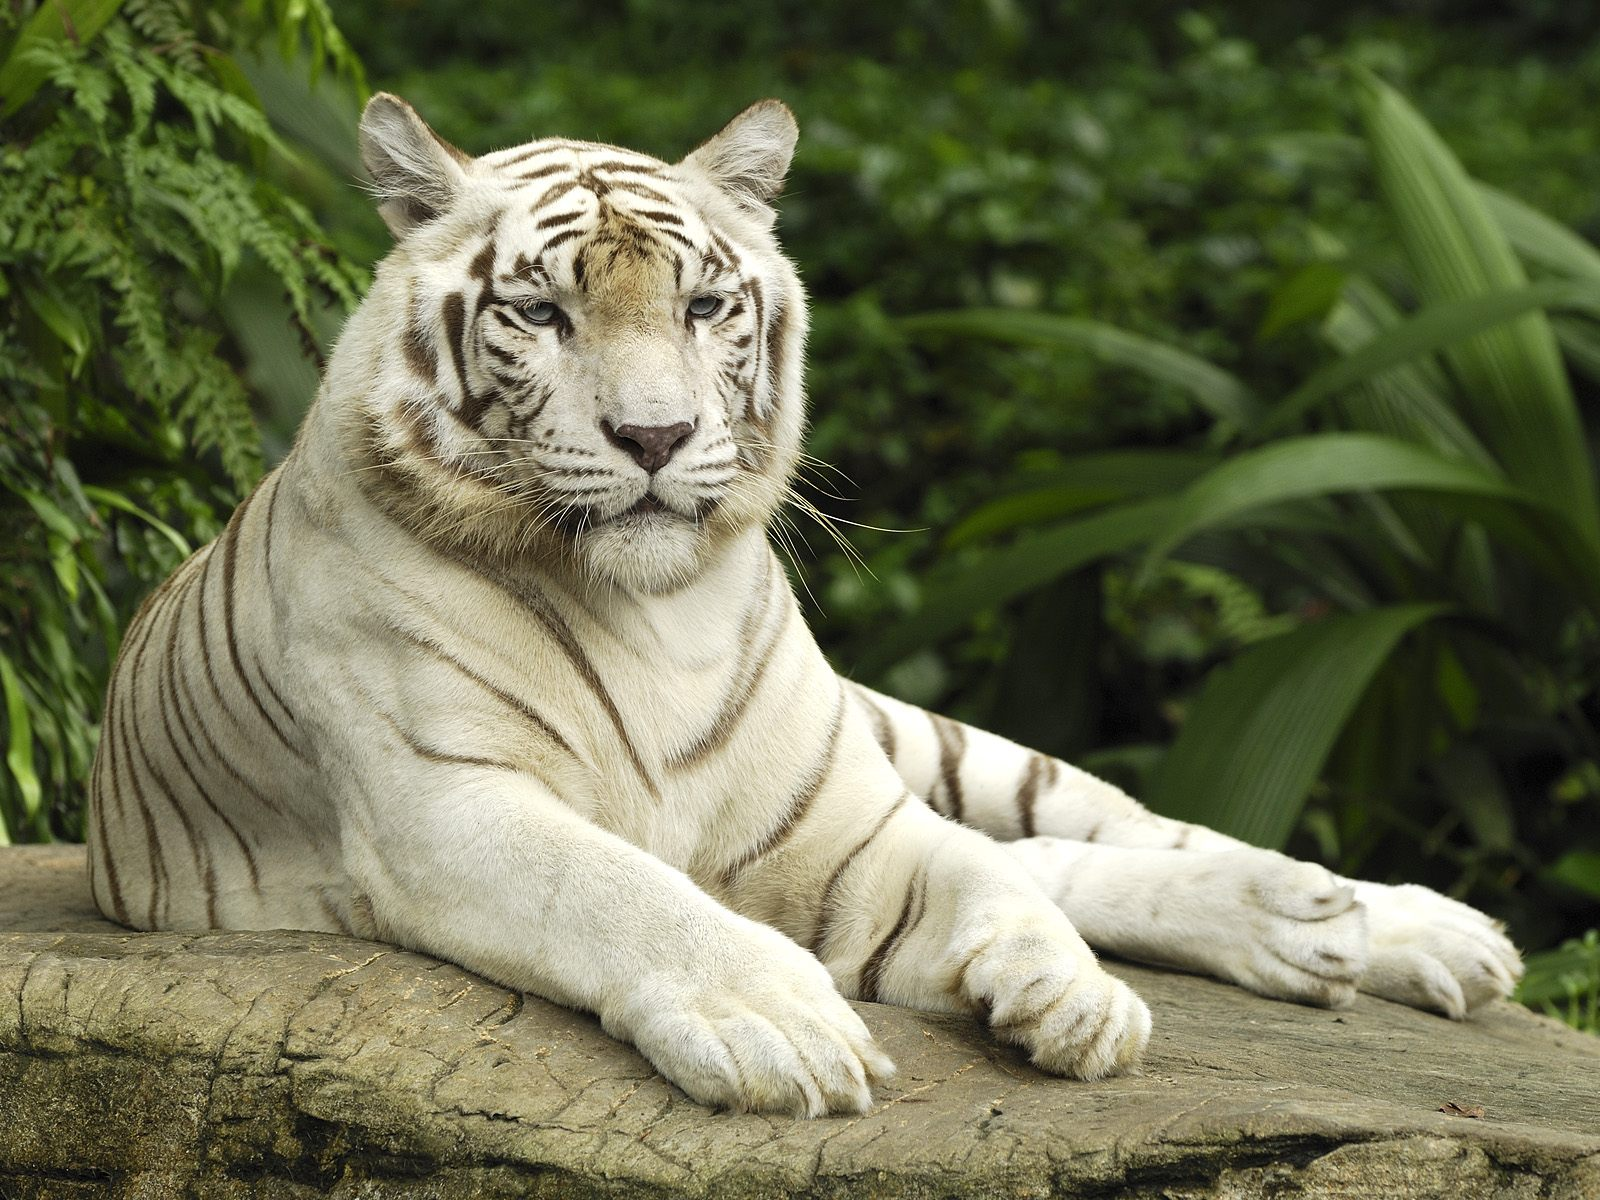 Hd wallpapers white tiger hd wallpaper 1080p - Tiger hd wallpaper for pc ...